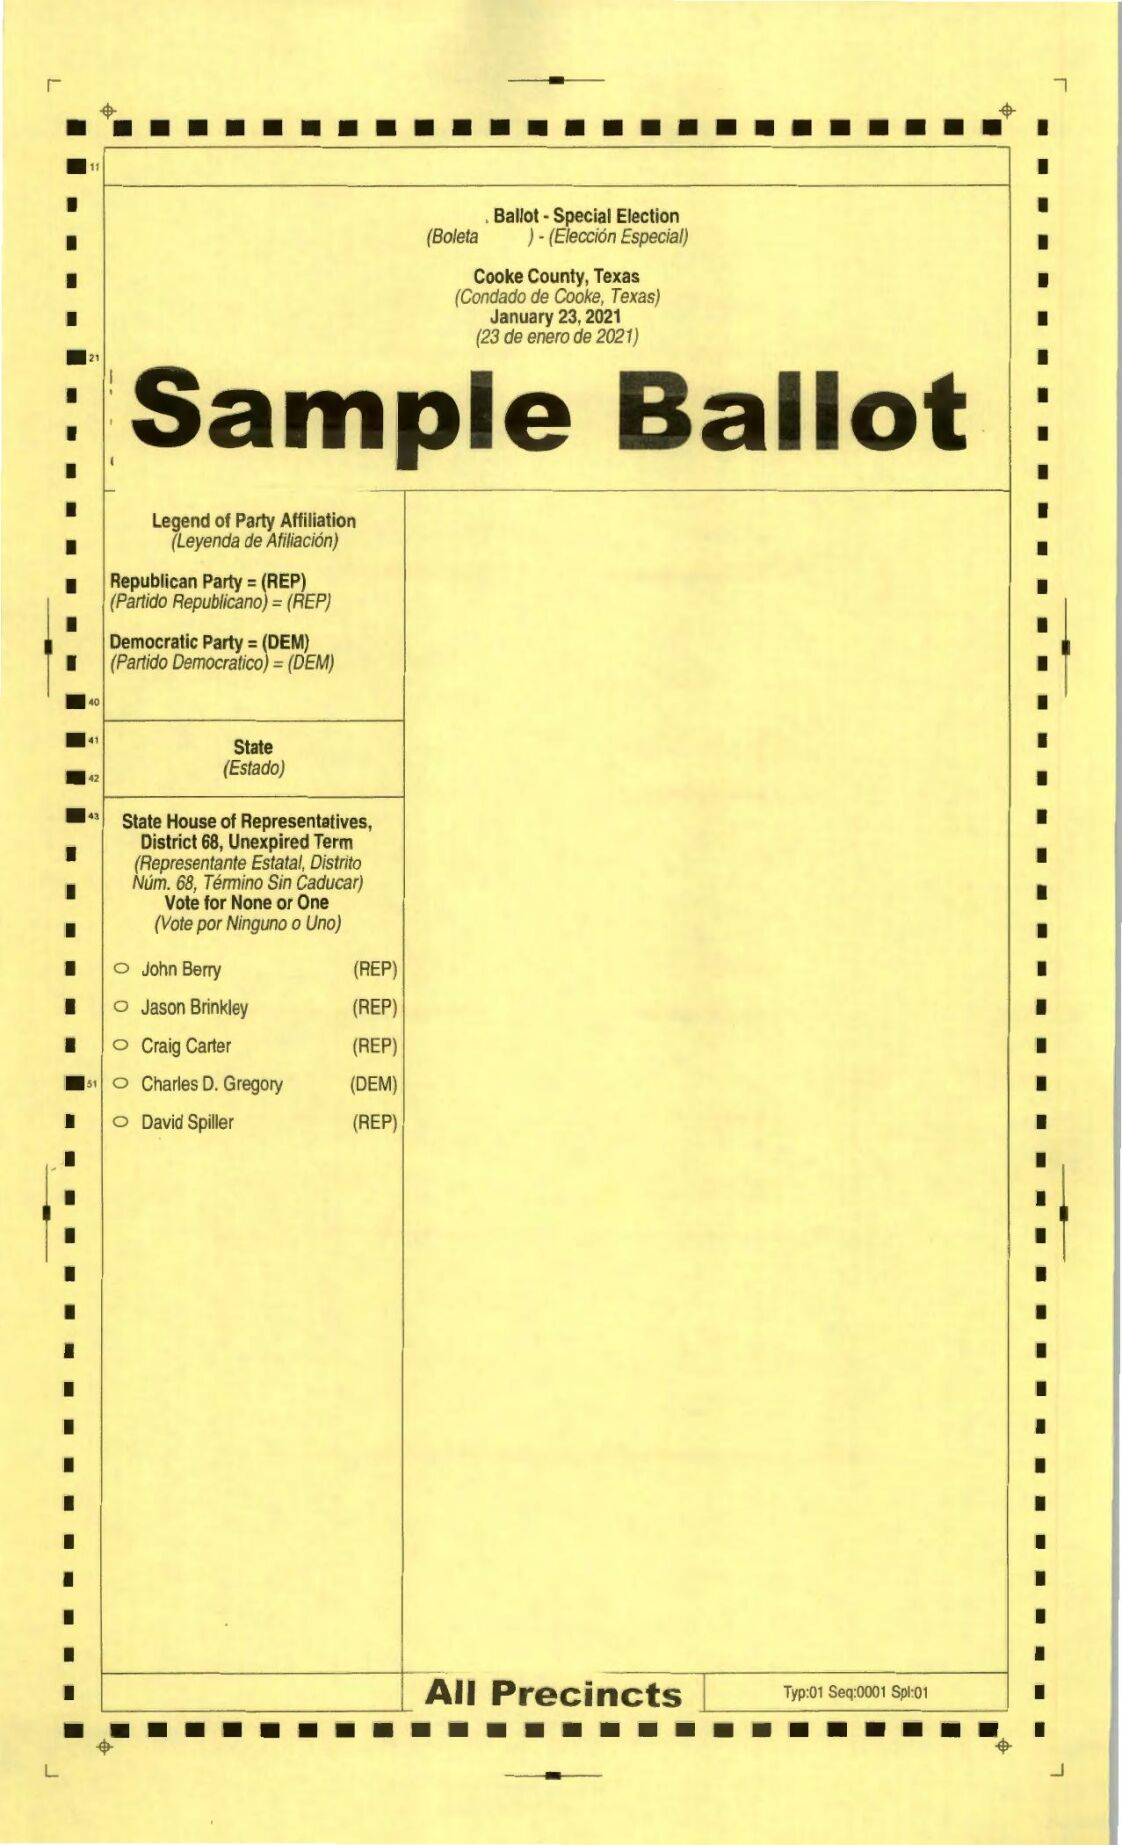 PDF: Sample ballot for Jan. 23, 2021 HD-68 special election